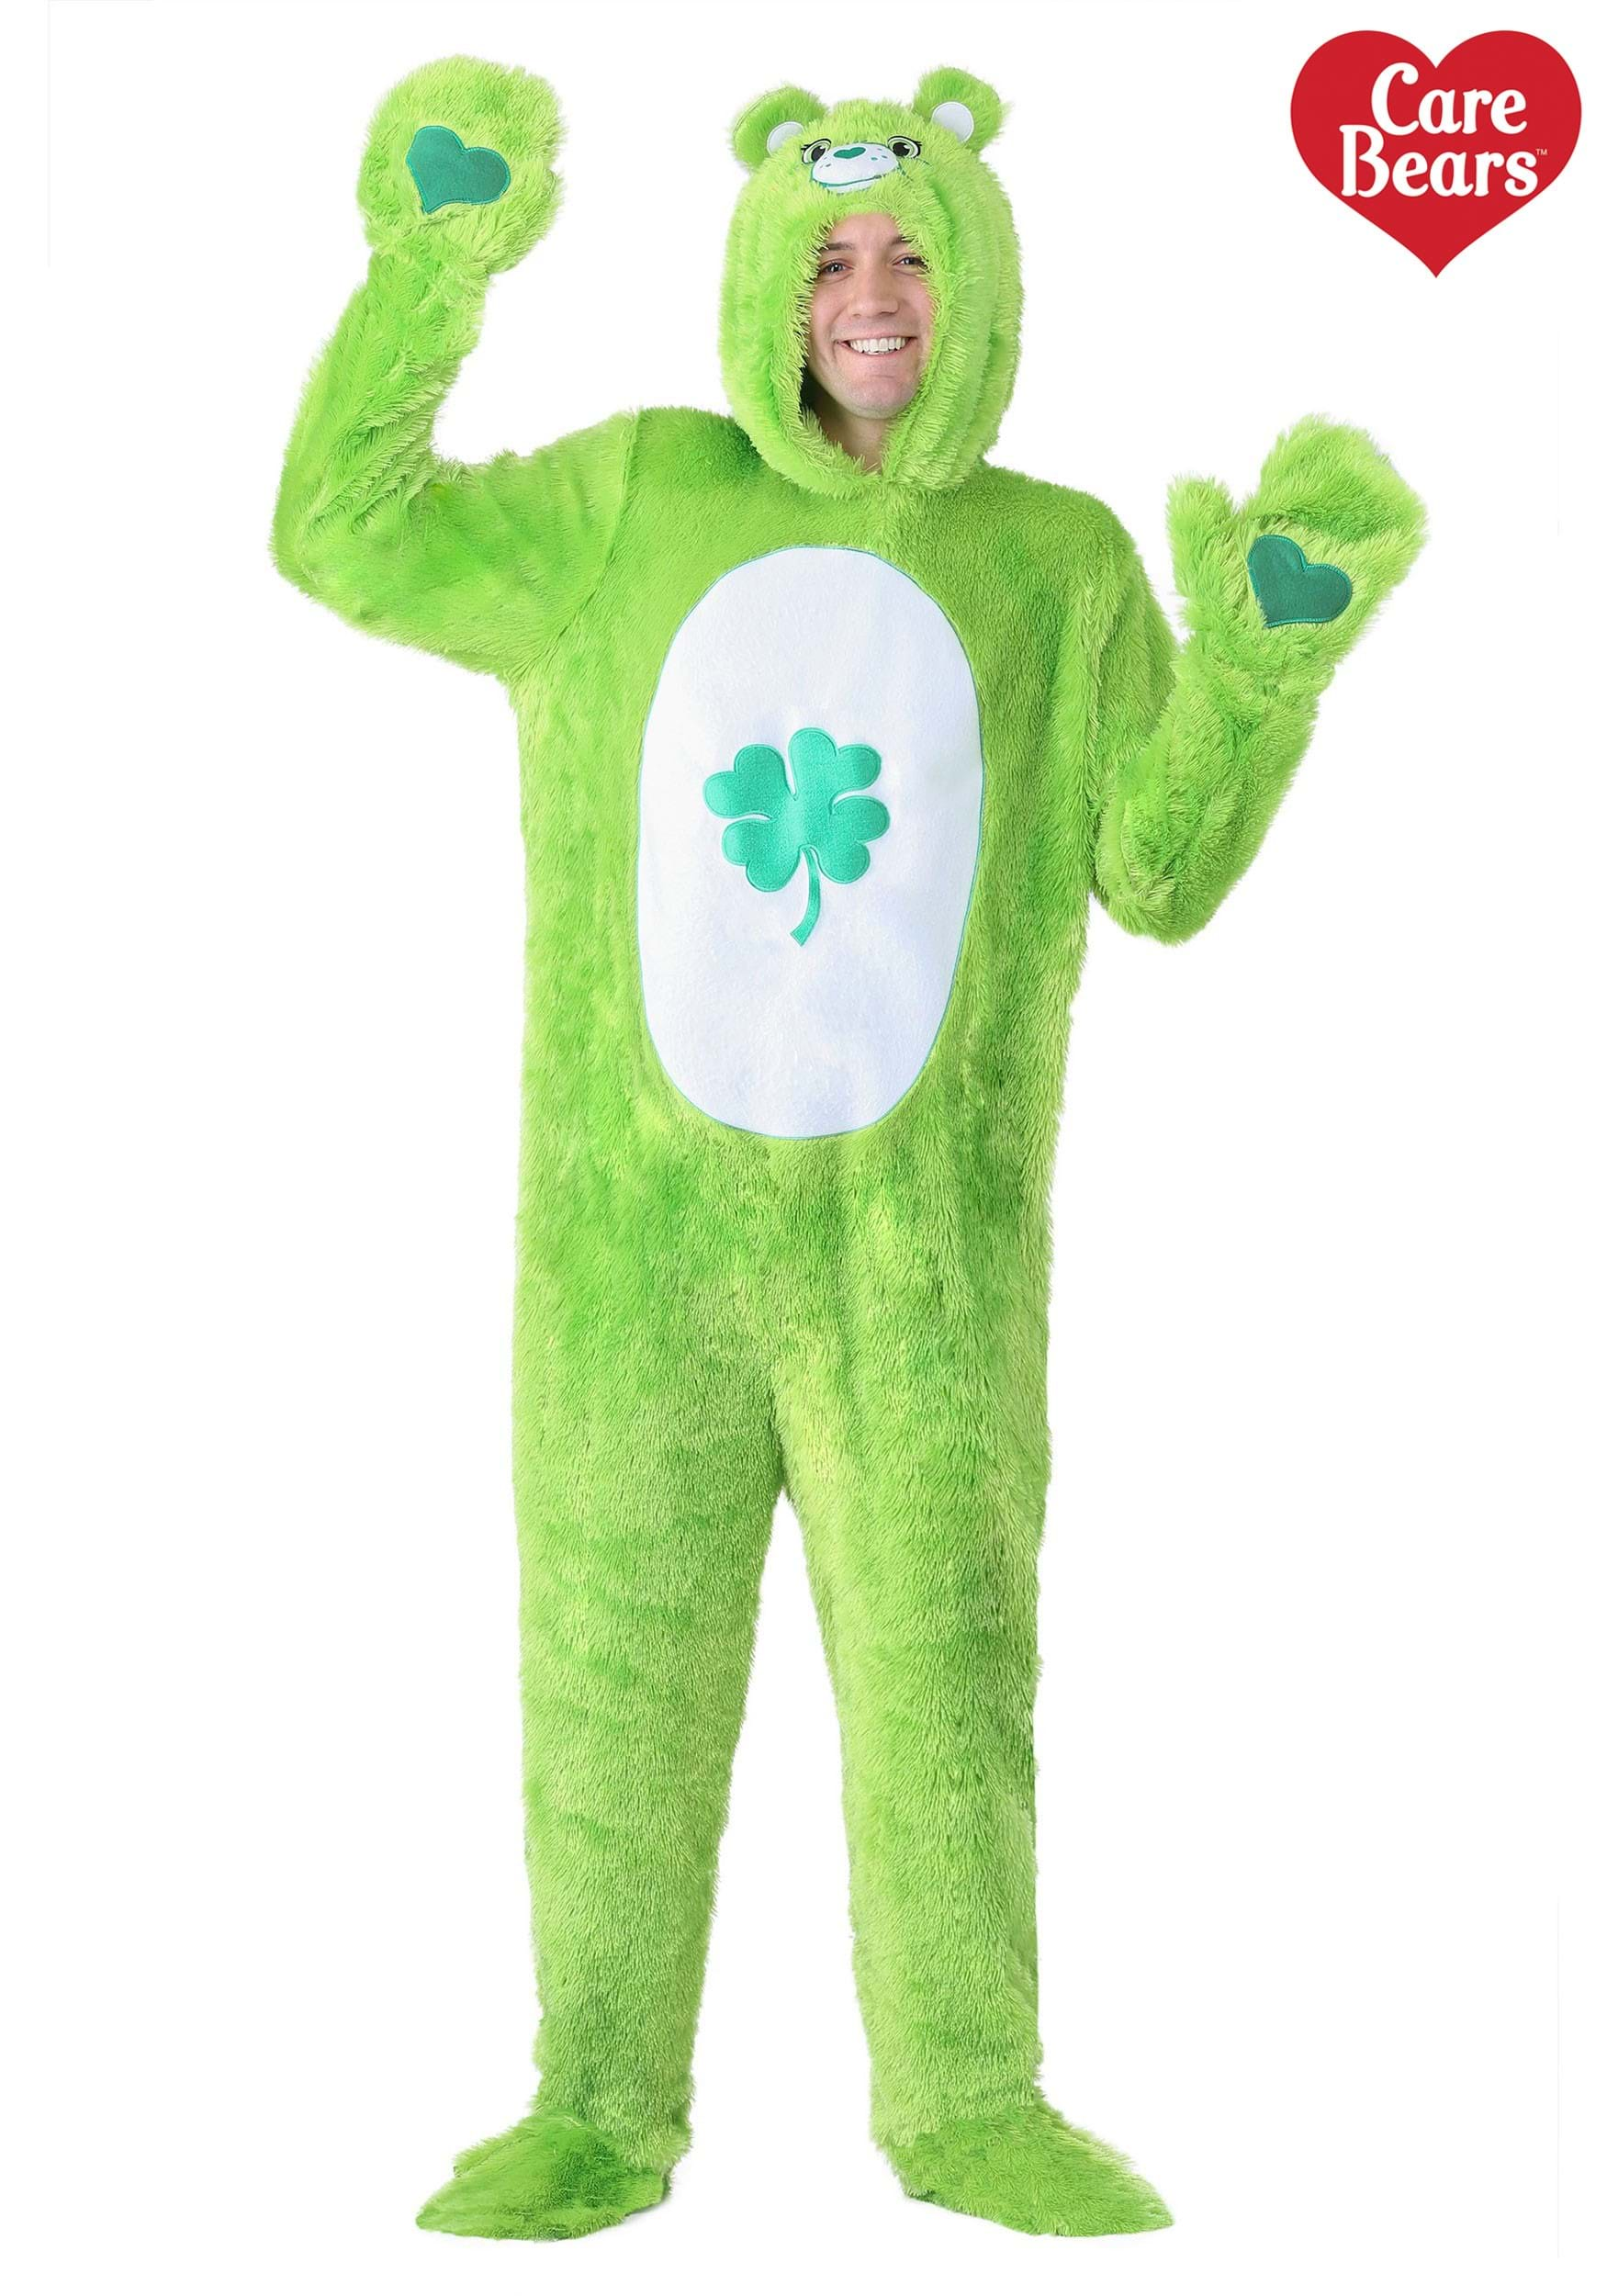 Sexy care bear costume